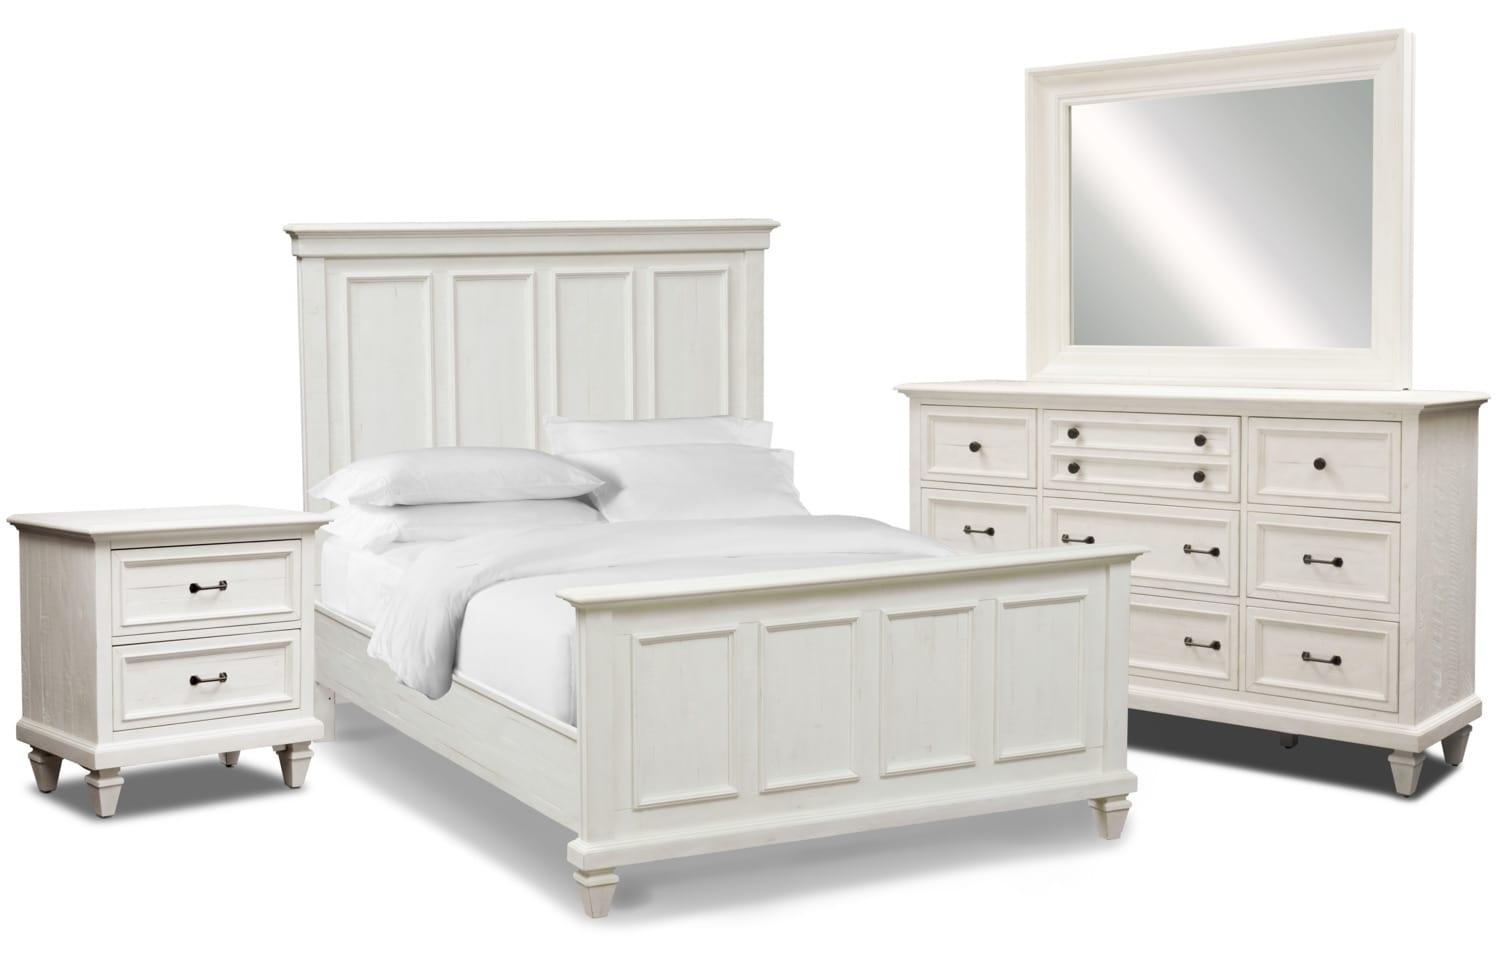 Bedroom Furniture - Harrison 6-Piece Bedroom Set with Nightstand, Dresser and Mirror